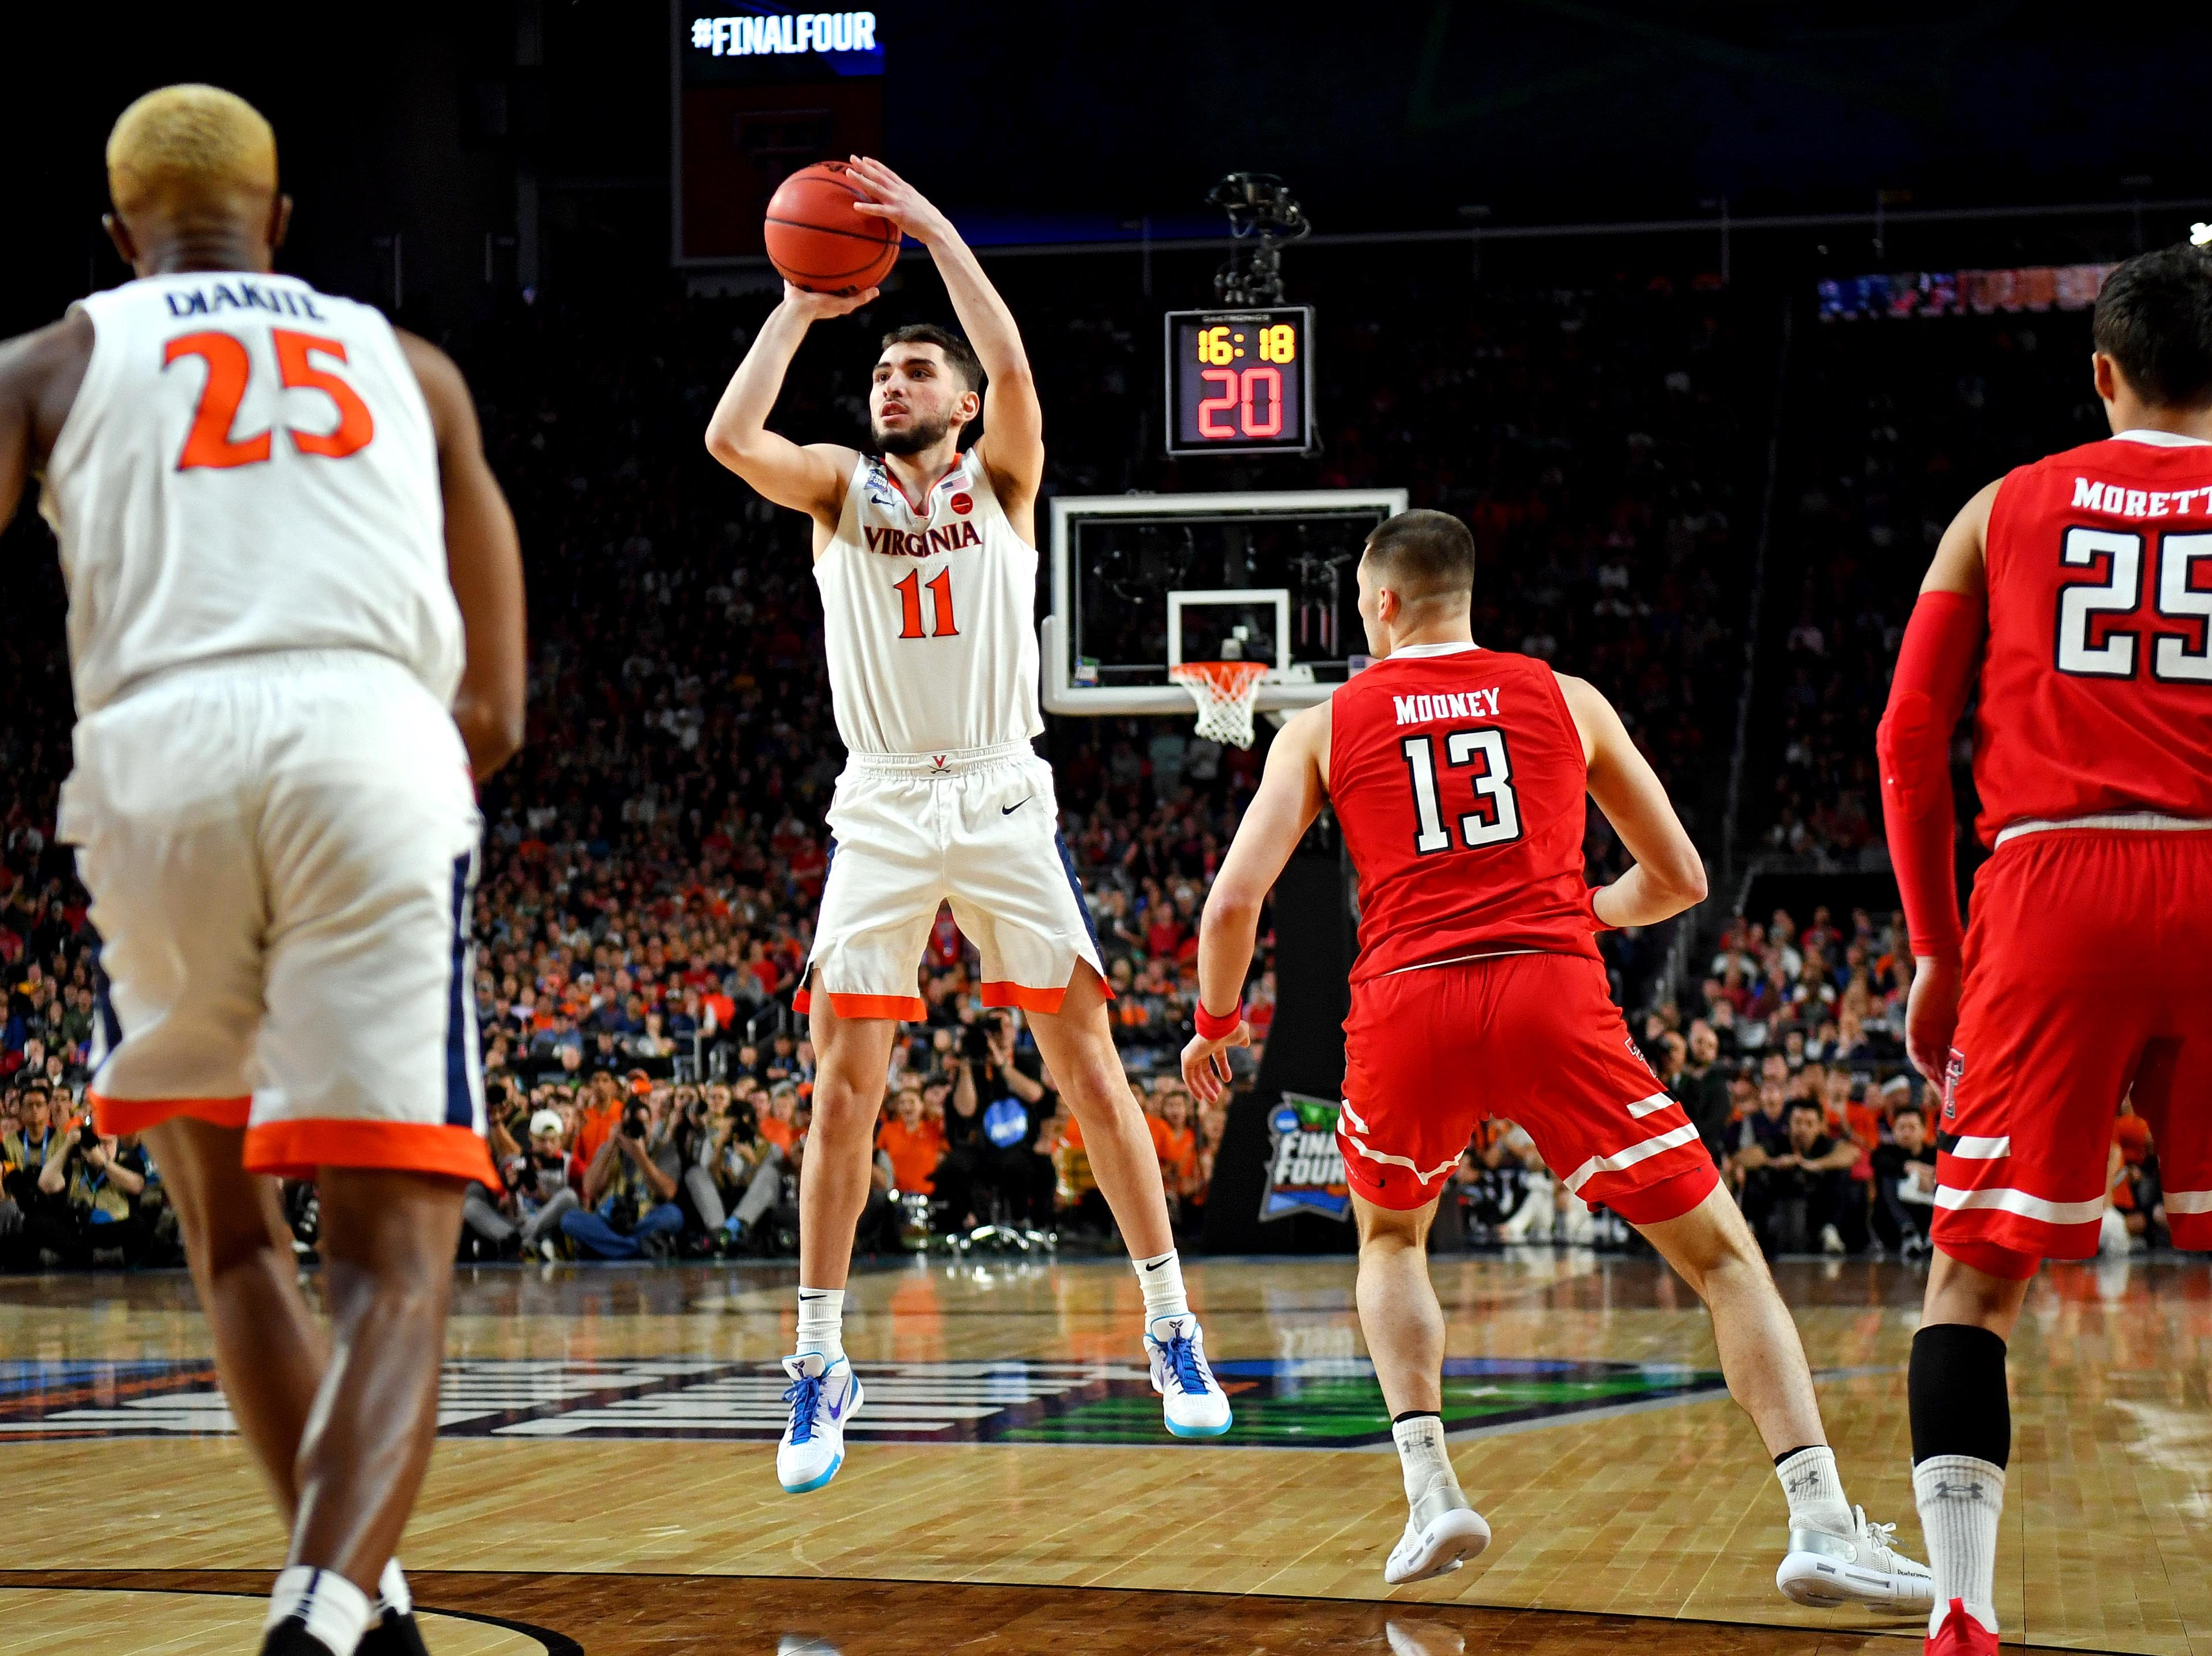 Apr 8, 2019; Minneapolis, MN, USA; Virginia Cavaliers guard Ty Jerome (11) shoots the ball against Texas Tech Red Raiders guard Matt Mooney (13) during the first half in the championship game of the 2019 men's Final Four at US Bank Stadium. Mandatory Credit: Bob Donnan-USA TODAY Sports